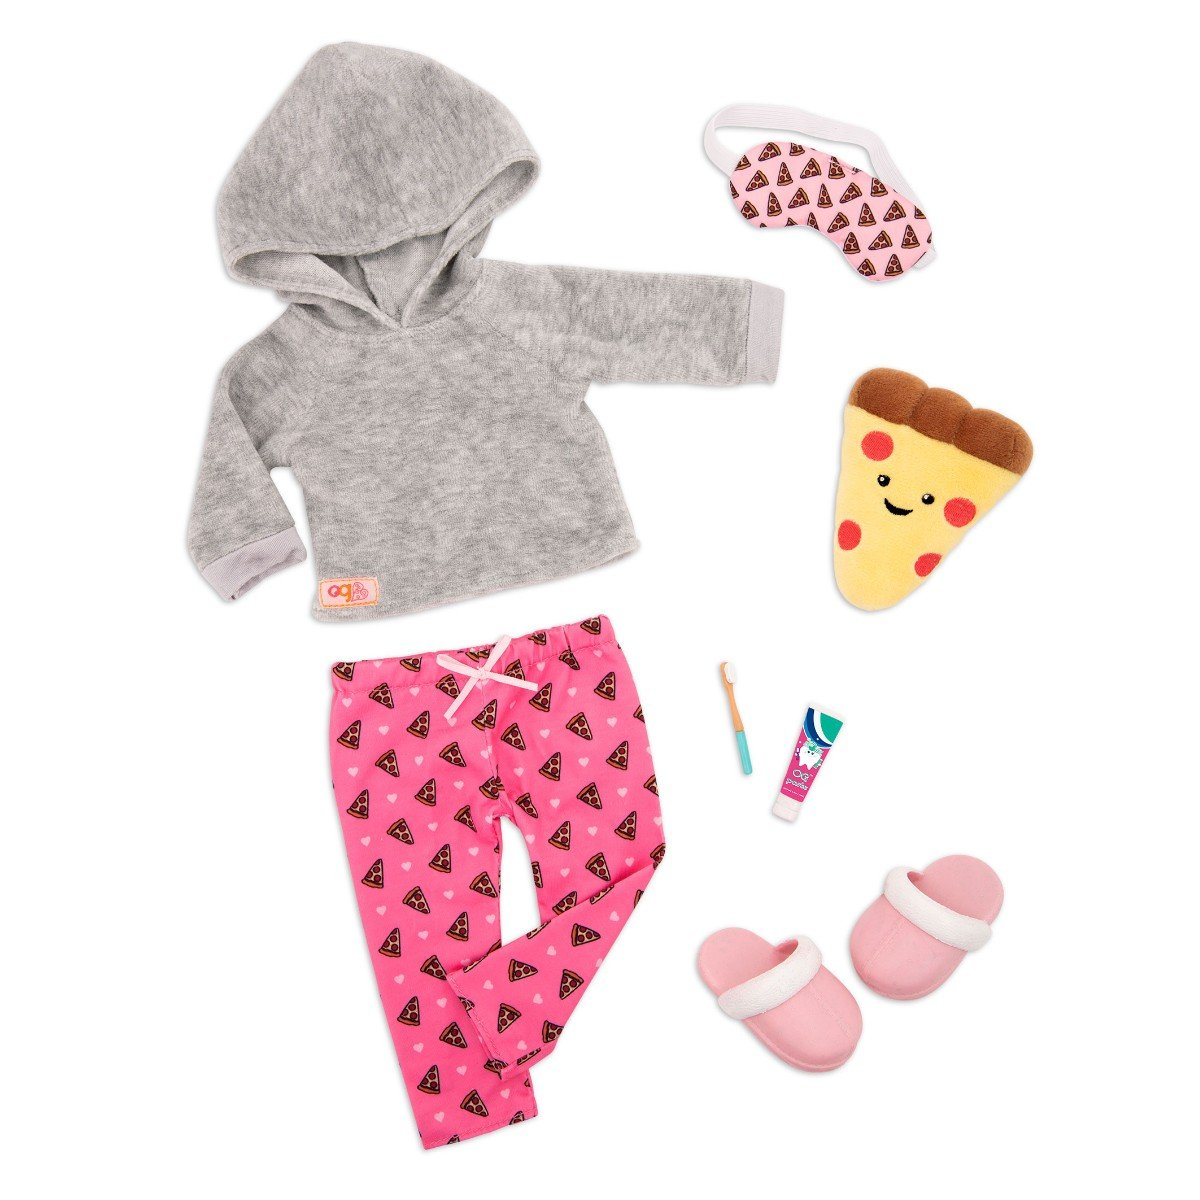 Our Generation - Deluxe outfit - Pizza Pyjamas (730453)